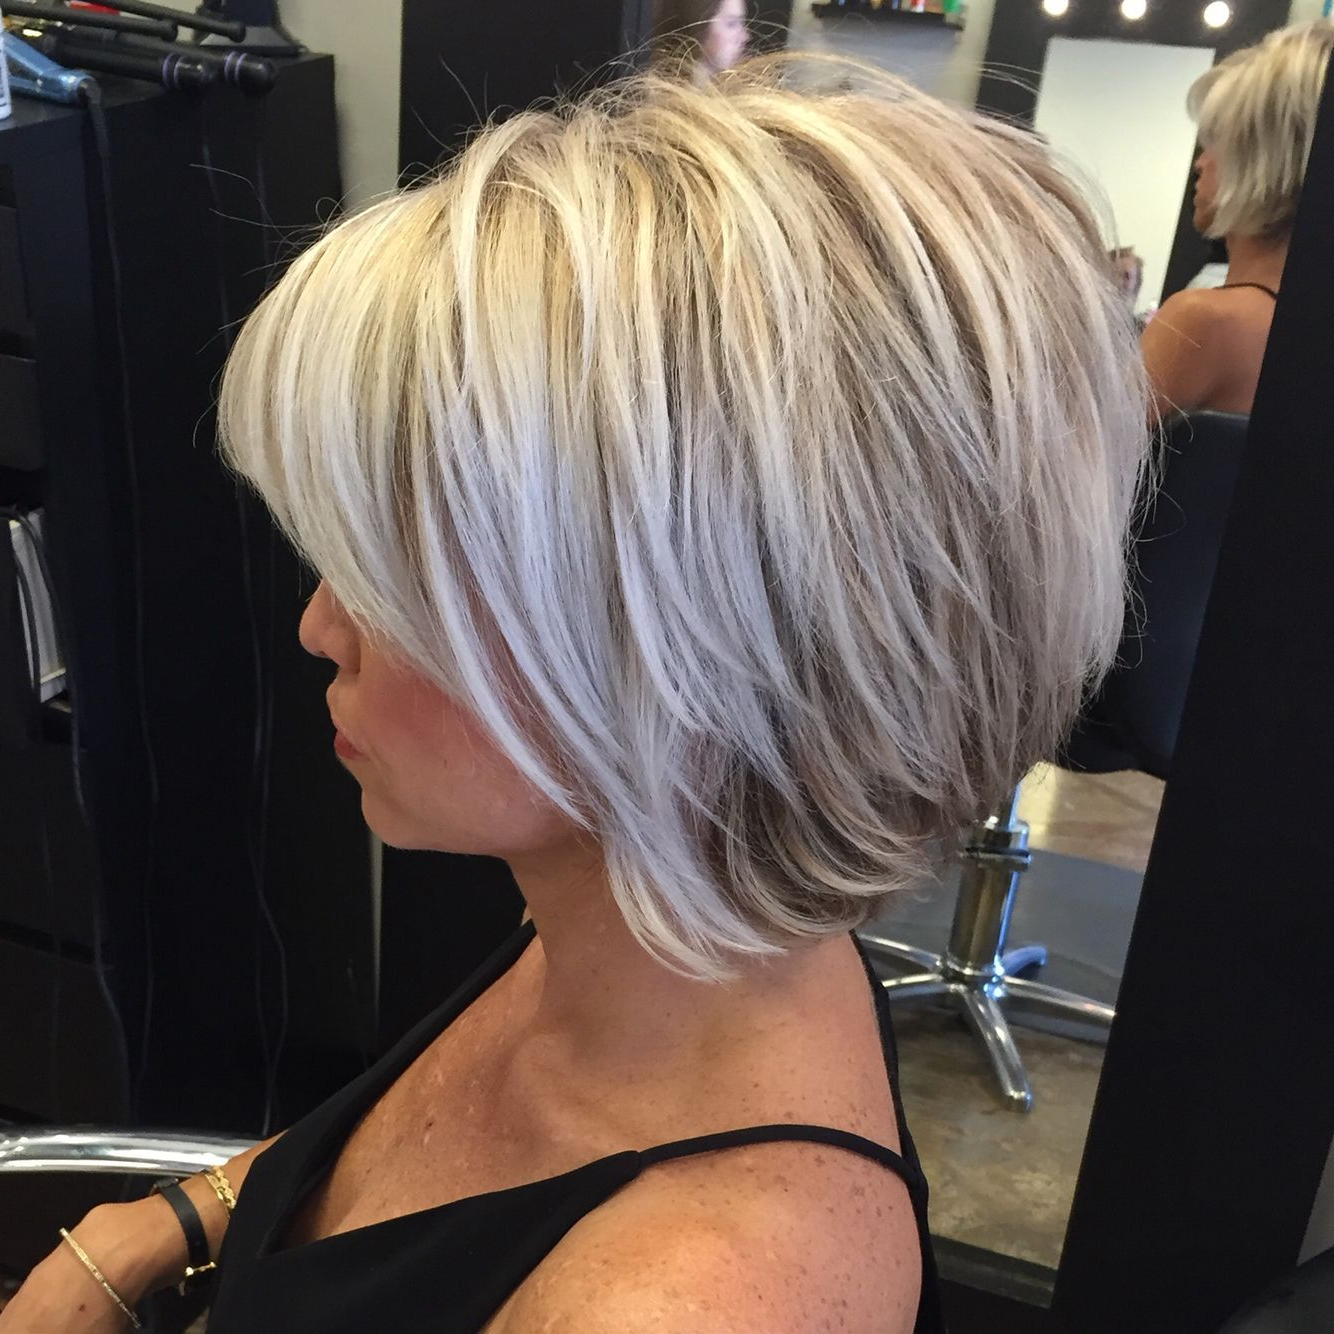 50 Short Bob Hairstyles 2015 – 2016 In 2018 | { Hair, Makeup, Nails With Short Bob Hairstyles With Whipped Curls And Babylights (View 6 of 20)